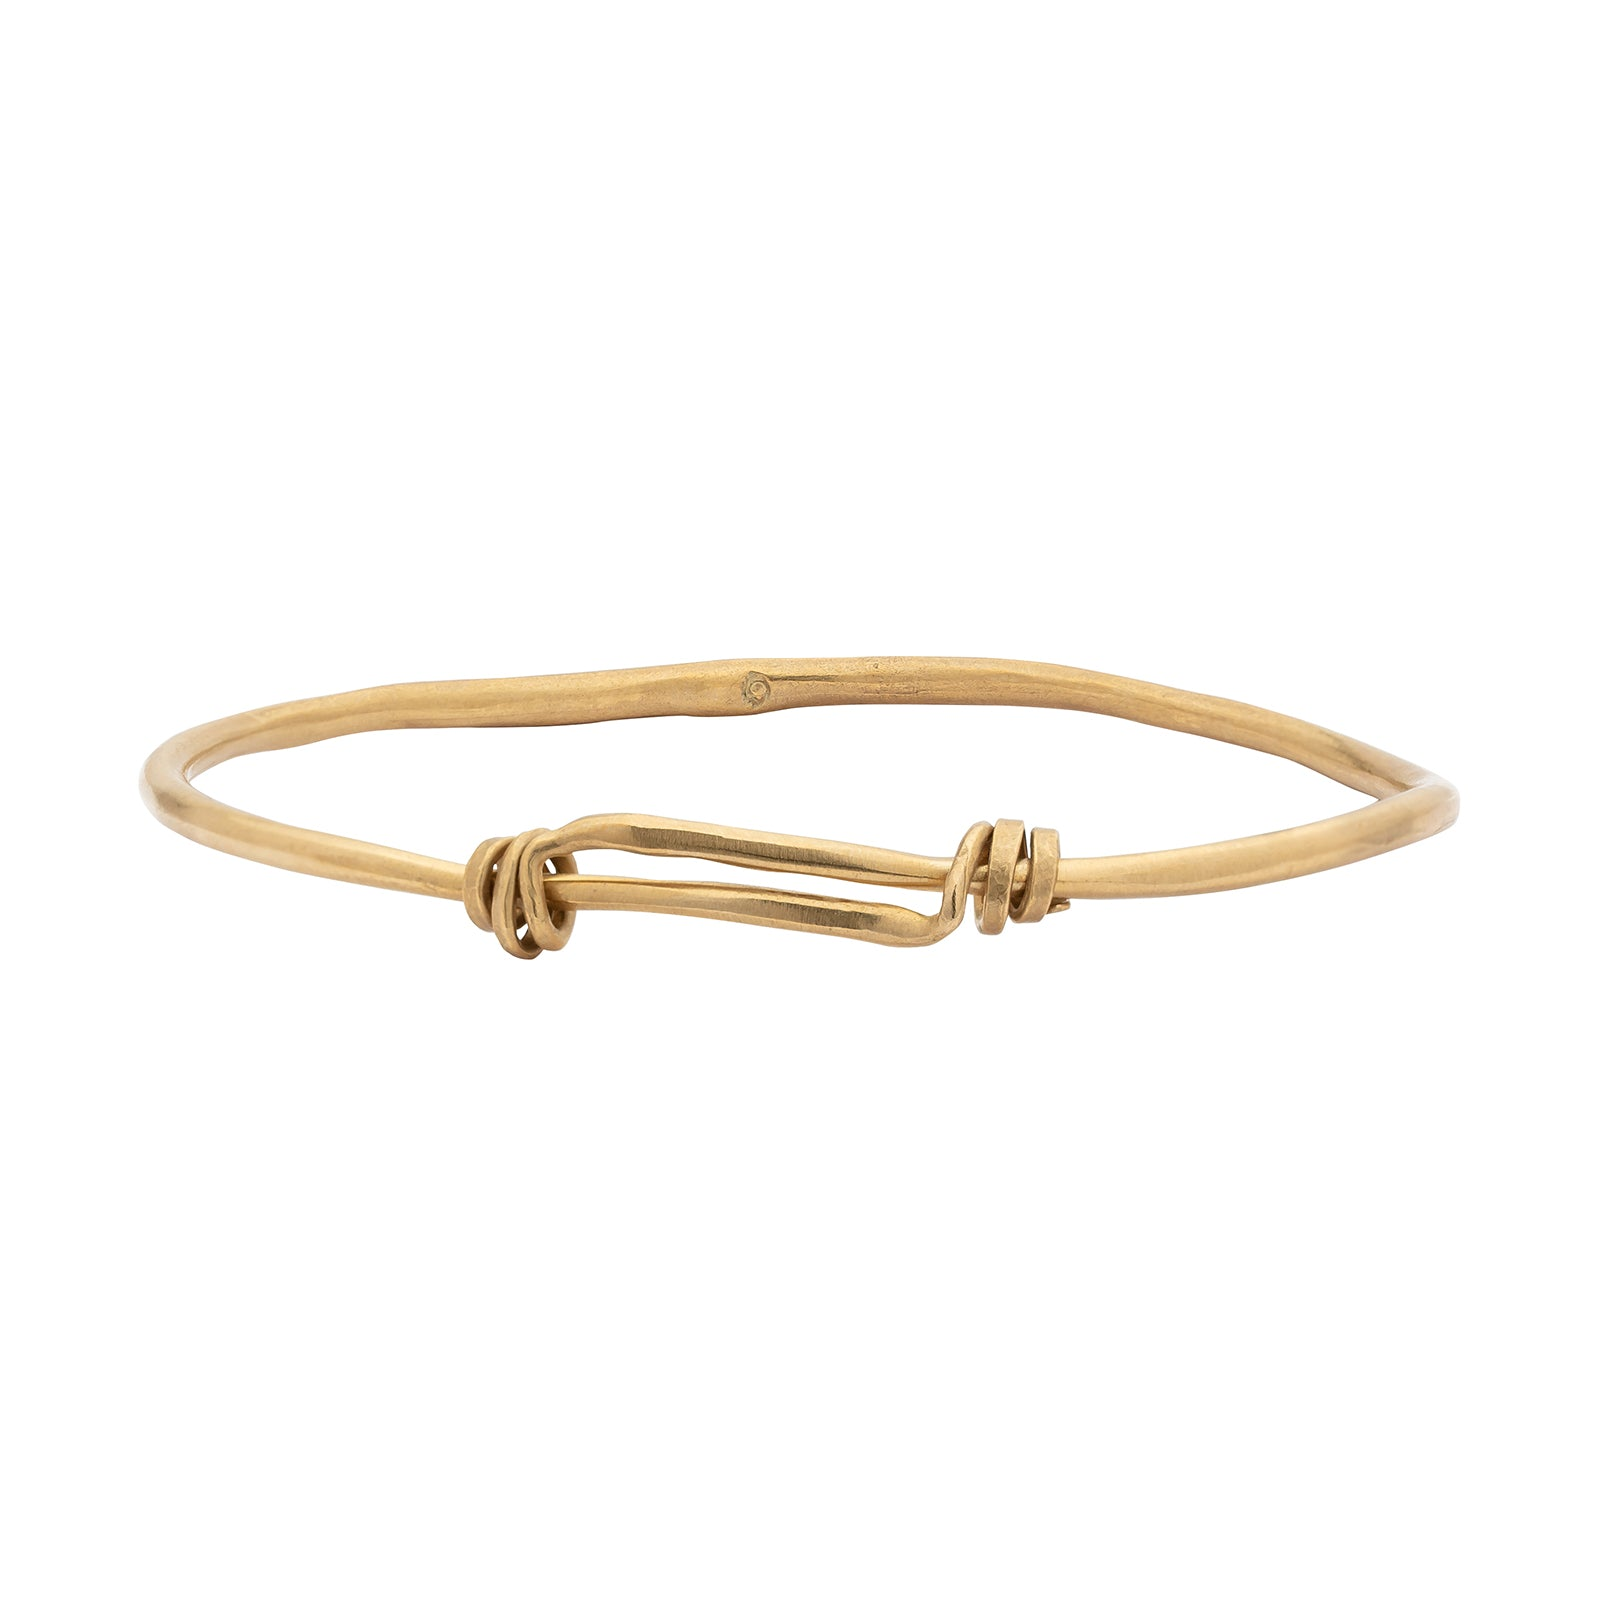 Ariana Boussard-Reifel Beverley Bangle - Brass - Bracelets - Broken English Jewelry